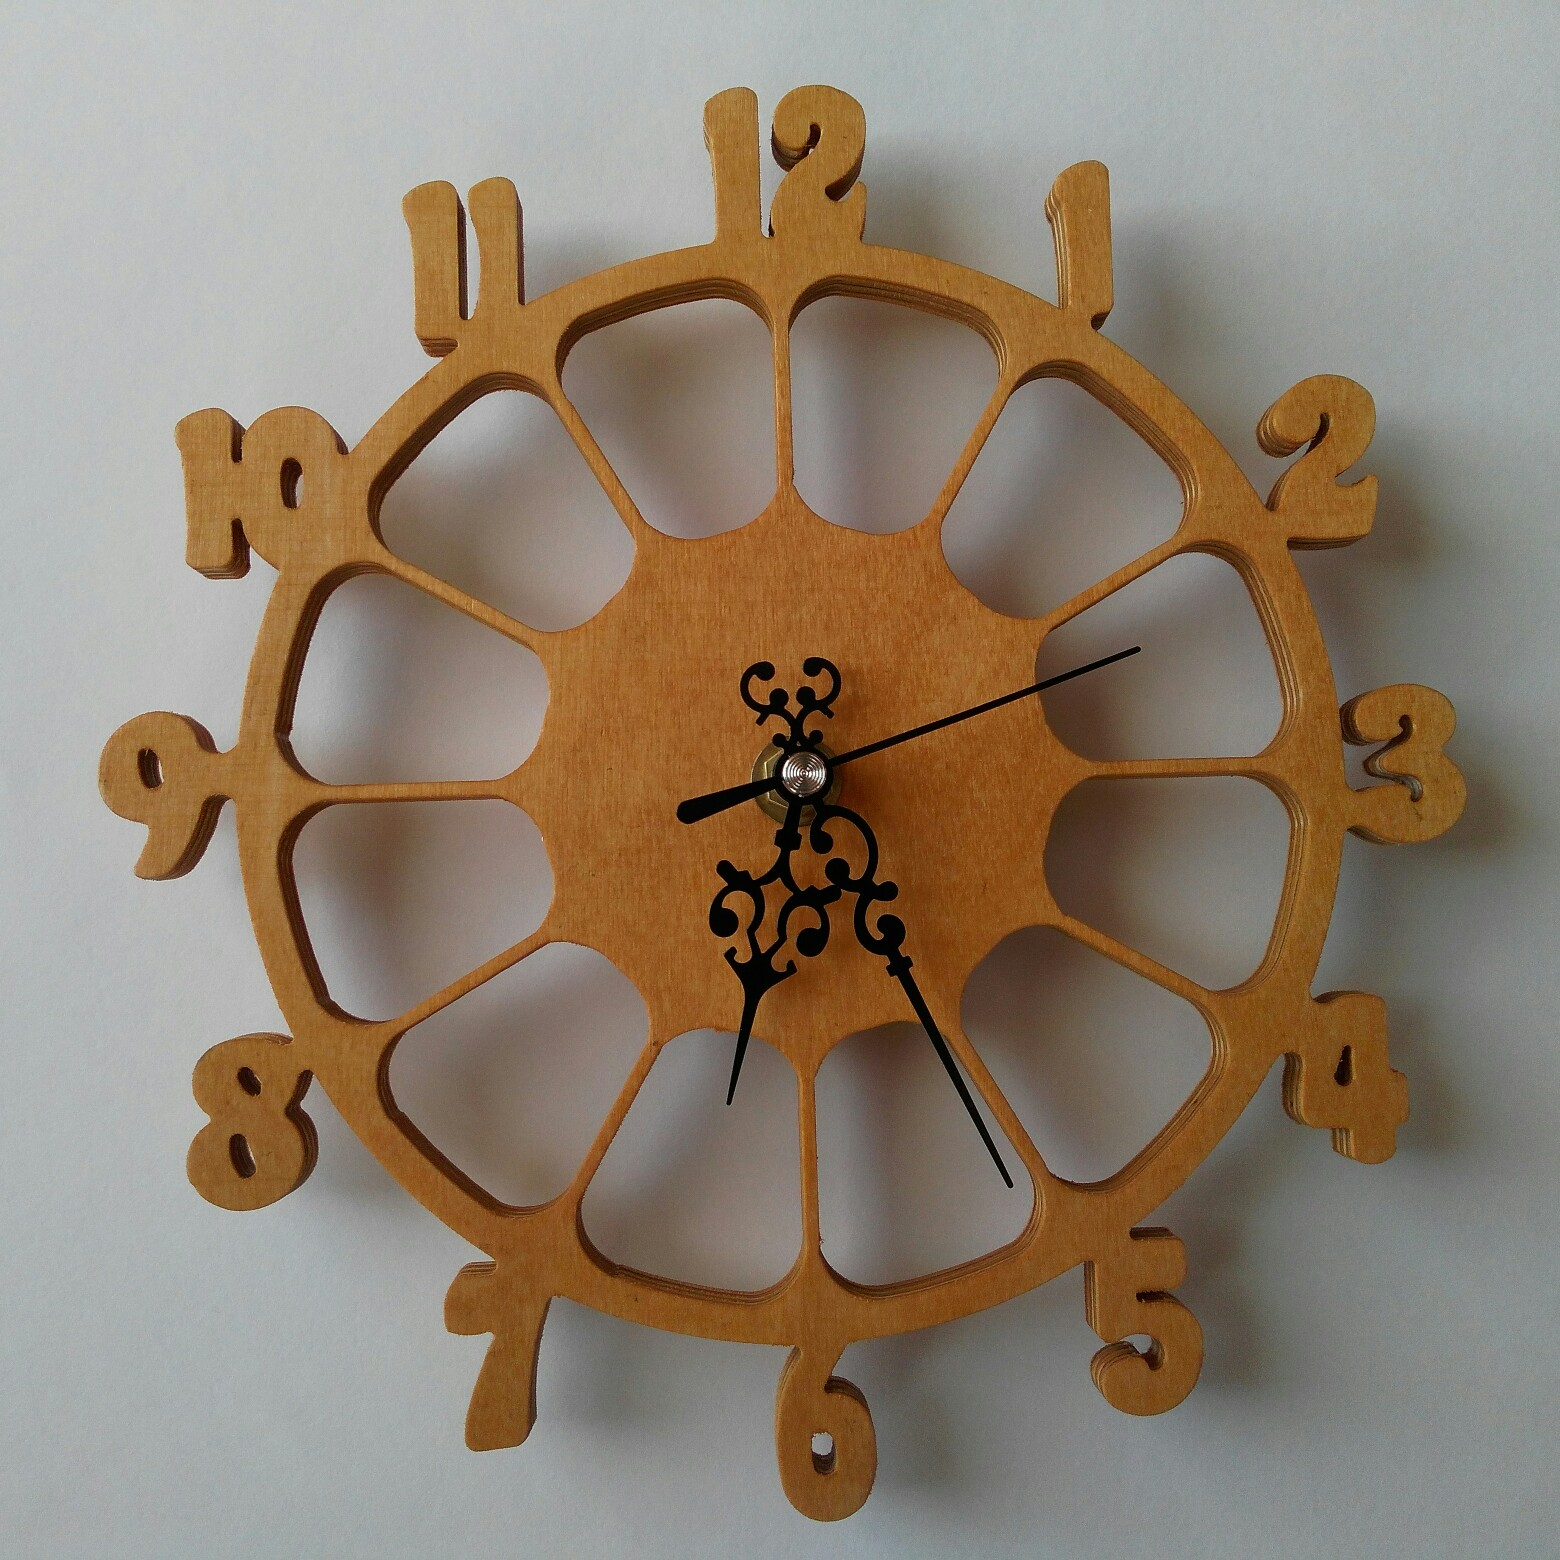 Laser Cut Wall Clock Cnc Template Dxf File Free Download 3axis Co